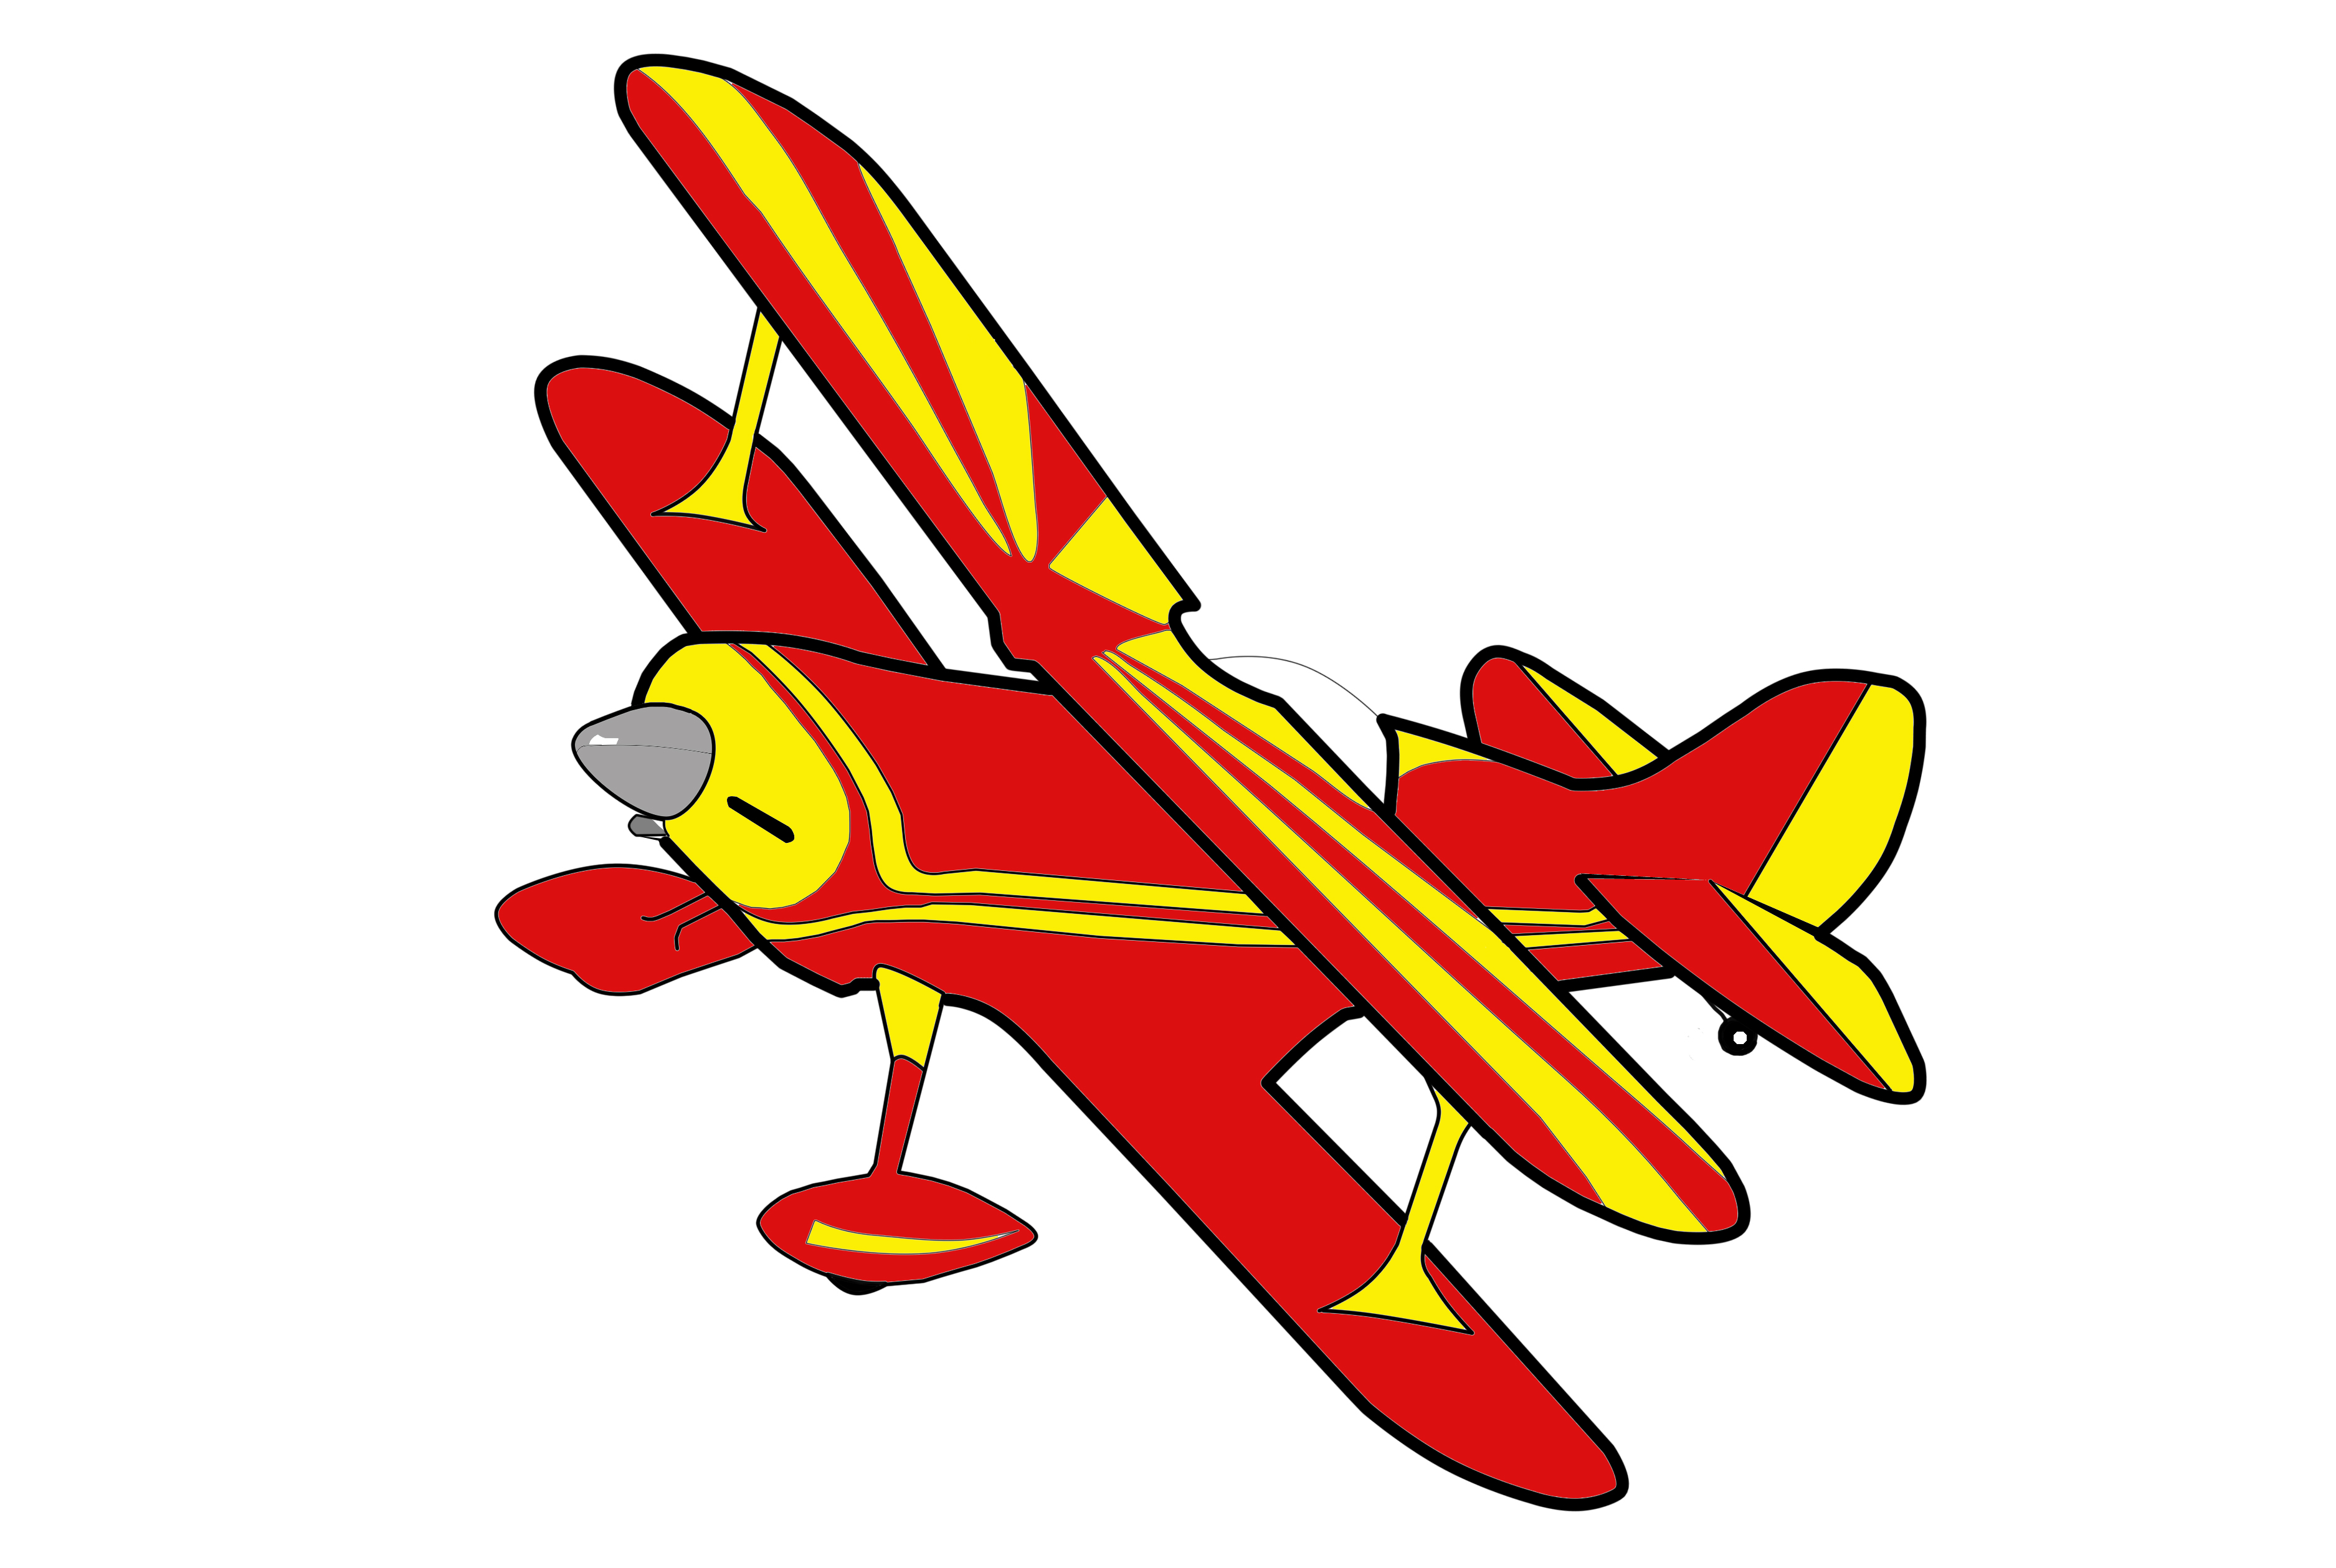 Clip Art Biplane Clipart biplane clipart kid free rf illustration by pams stock